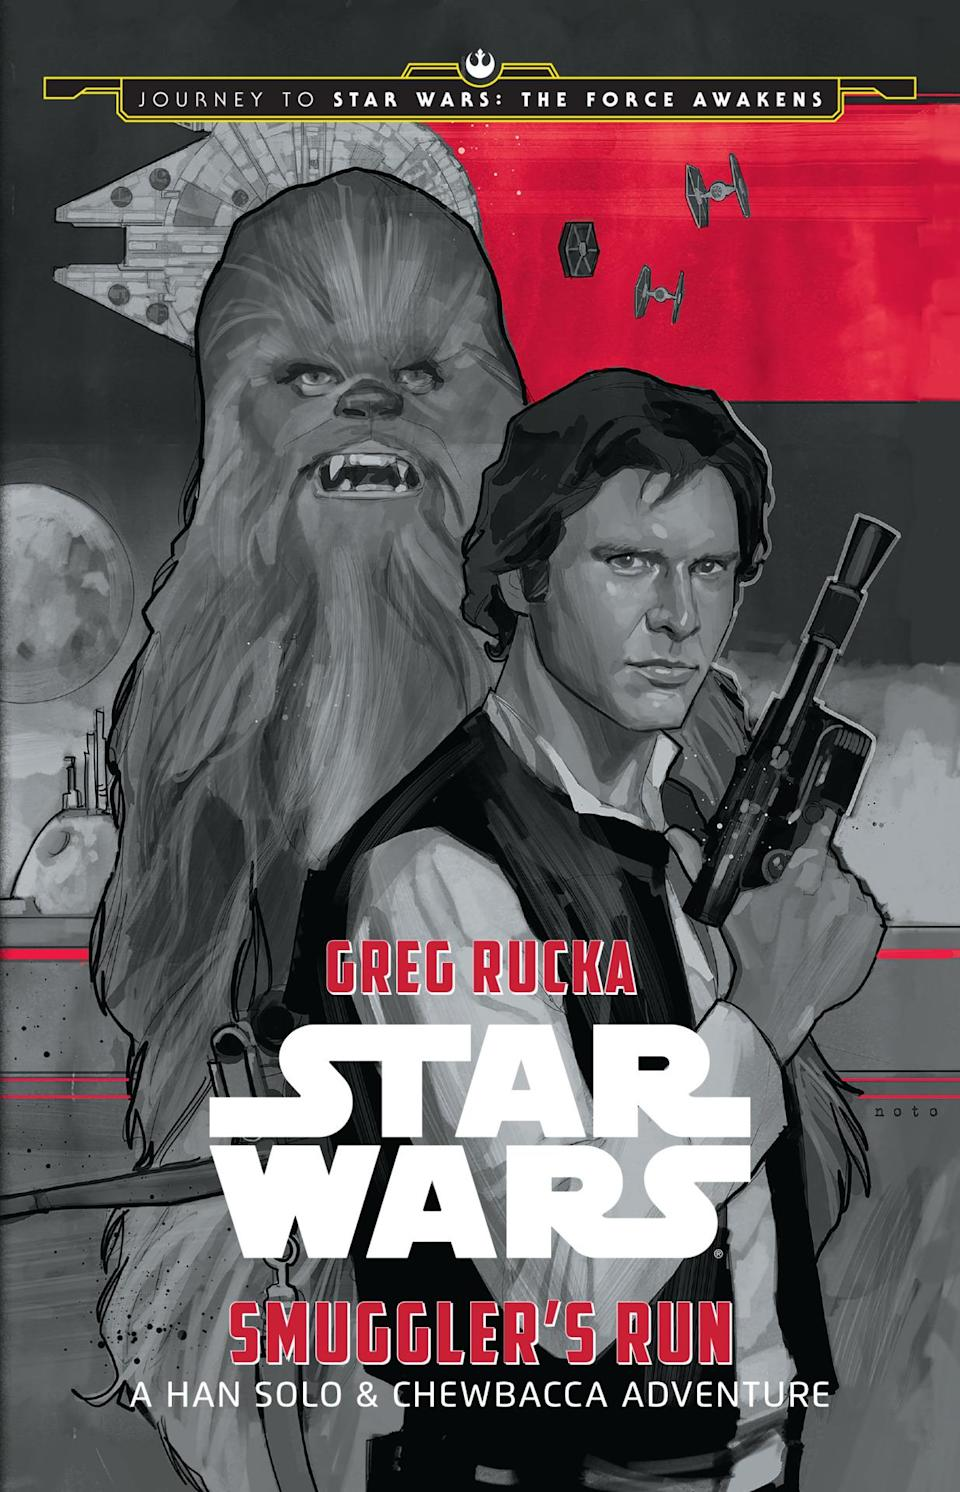 <p>If you're more of a Han Solo fan, 'Smuggler's Run,' available in print or electronically, should suit your fancy. It's set between 'A New Hope' and 'The Empire Strikes Back,' as Han and Chewie fly the Millennium Falcon on a top-secret mission for the Rebellion, while evading ruthless bounty hunters and a relentless imperial agent.</p>